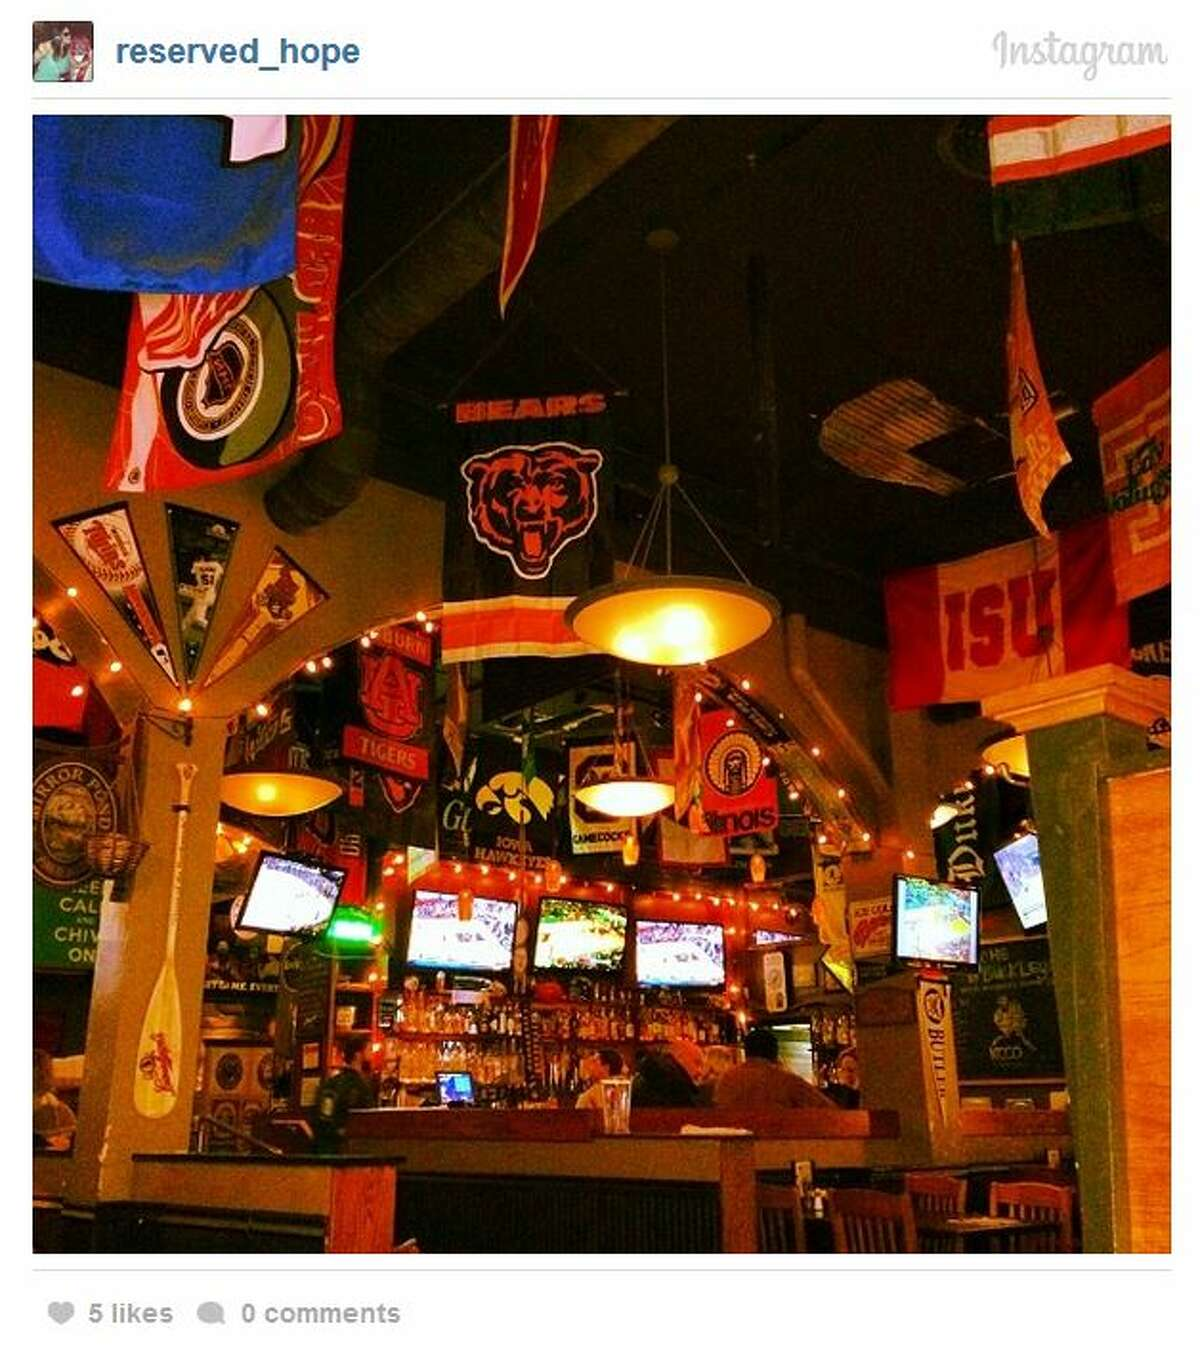 Buckley's : Expect both Buckley's locations to be loud, crowded, raucous and fun. Lots of TVs and typical bar food. As with most popular sports bars this Sunday, get there early. In Queen Anne (232 1st Ave. W.) and Belltown (2331 Second Ave.).  Pictured is the Queen Anne Buckley's.